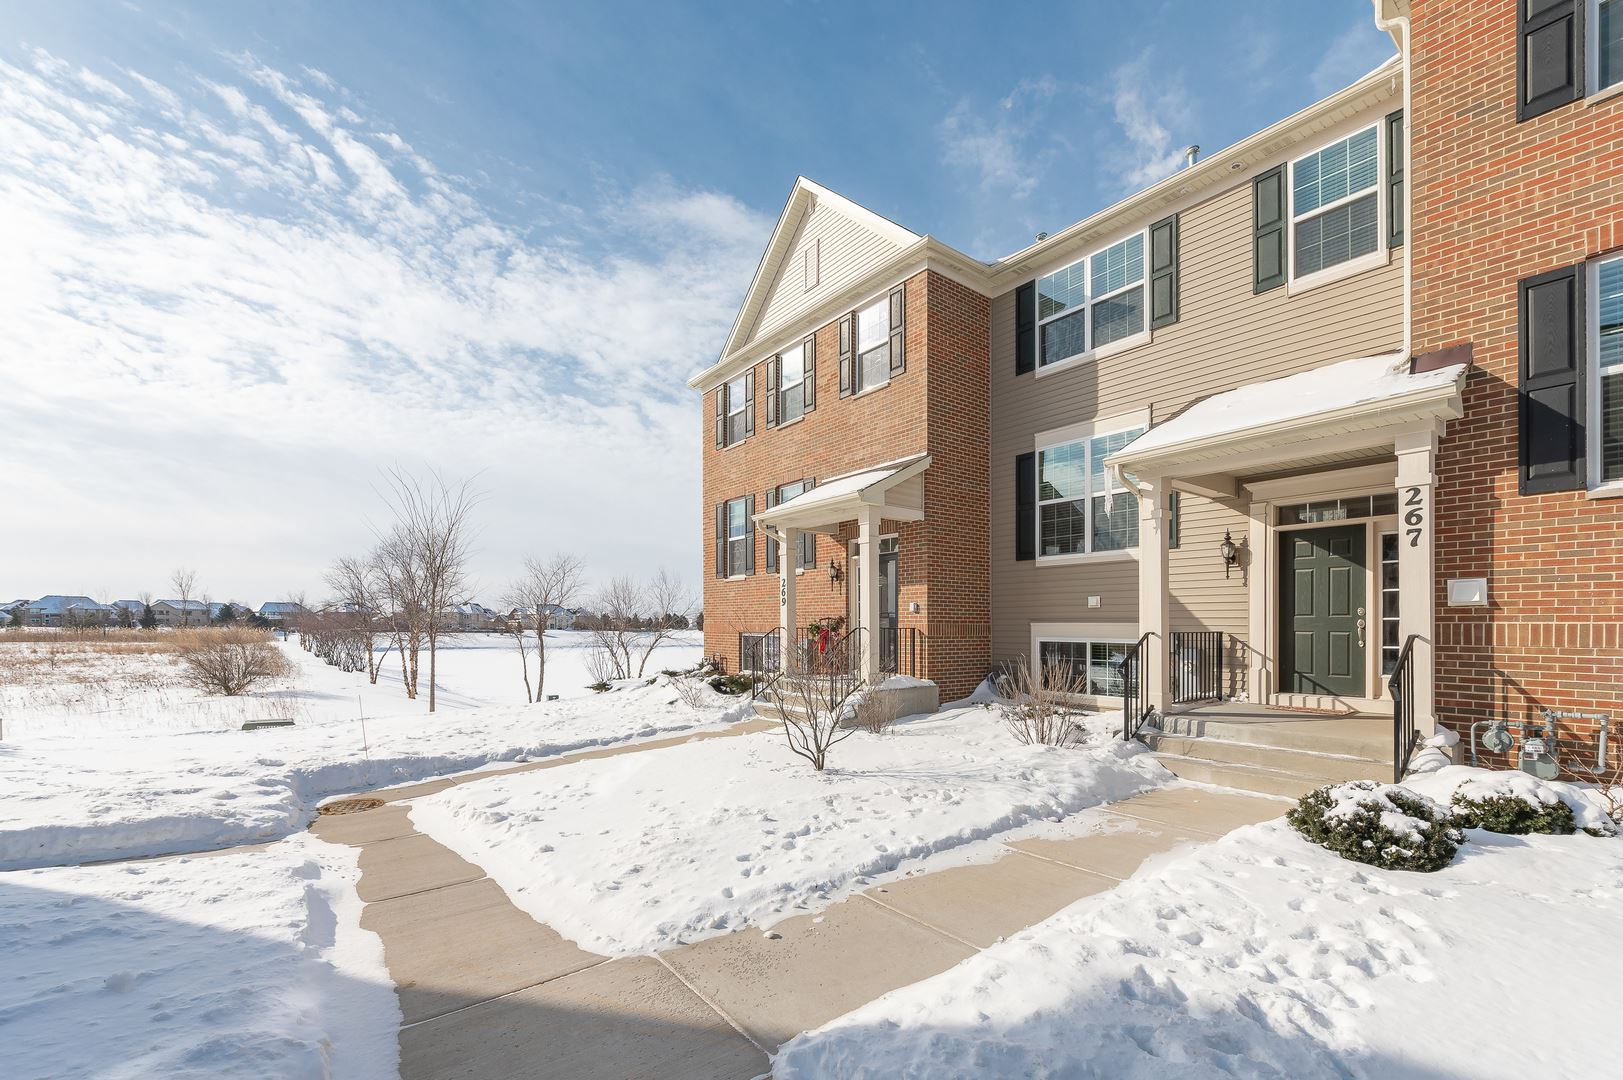 Photo of 267 Lakeshore Drive, Oswego, IL 60543 (MLS # 10998859)